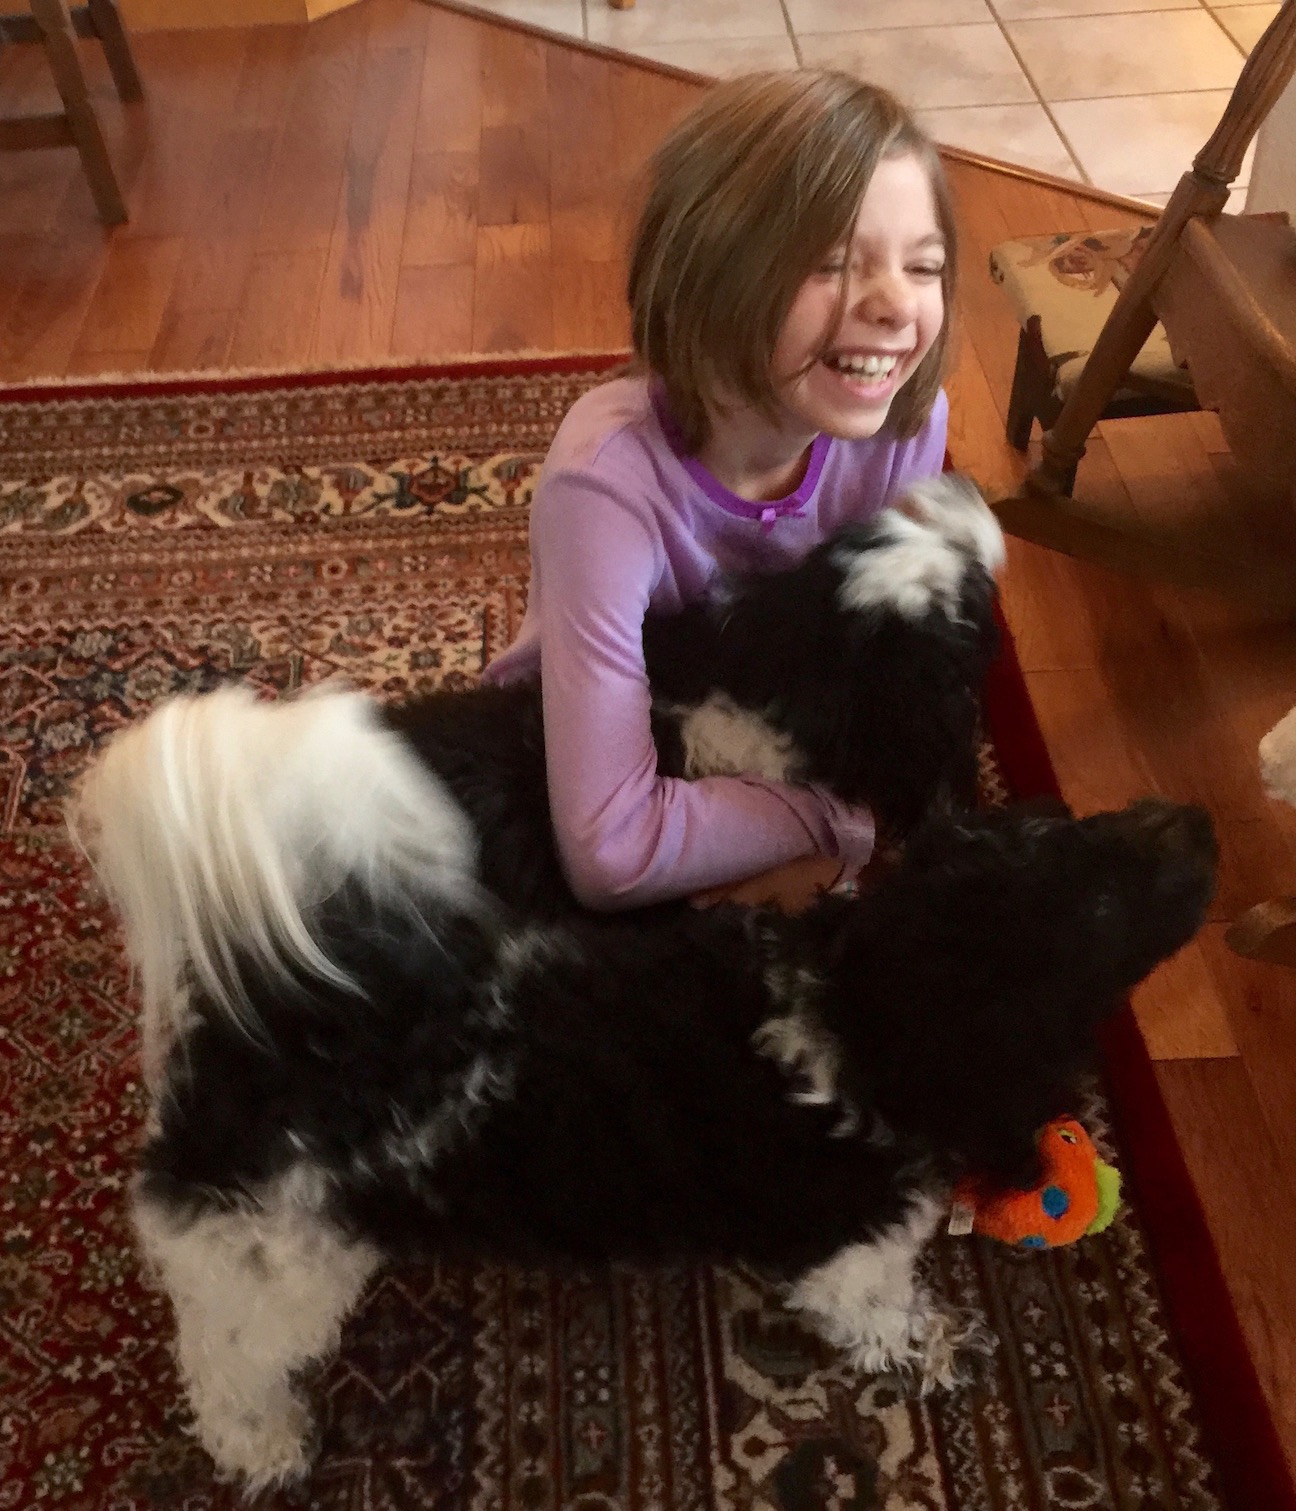 A young girls holding her dog, laughing and expressing joy.